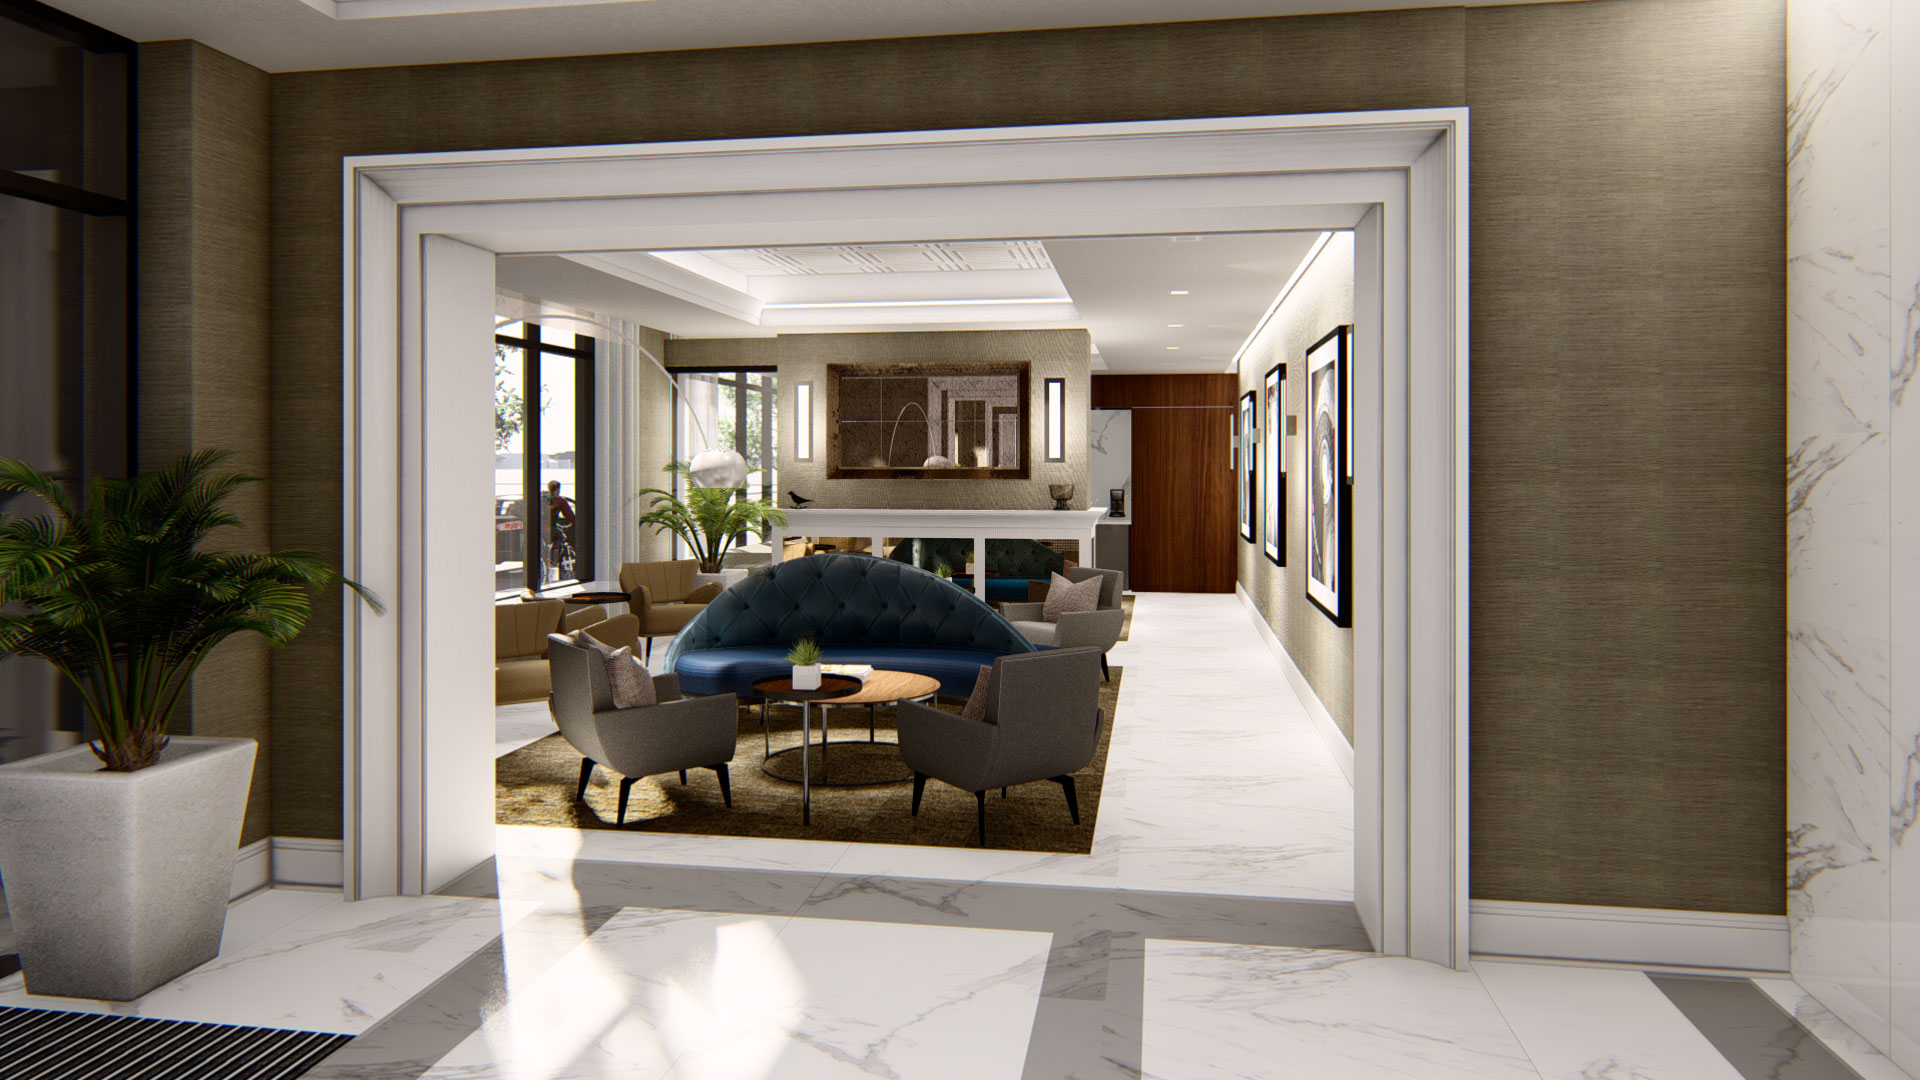 120 S. Broadway living room and kitchen rendering